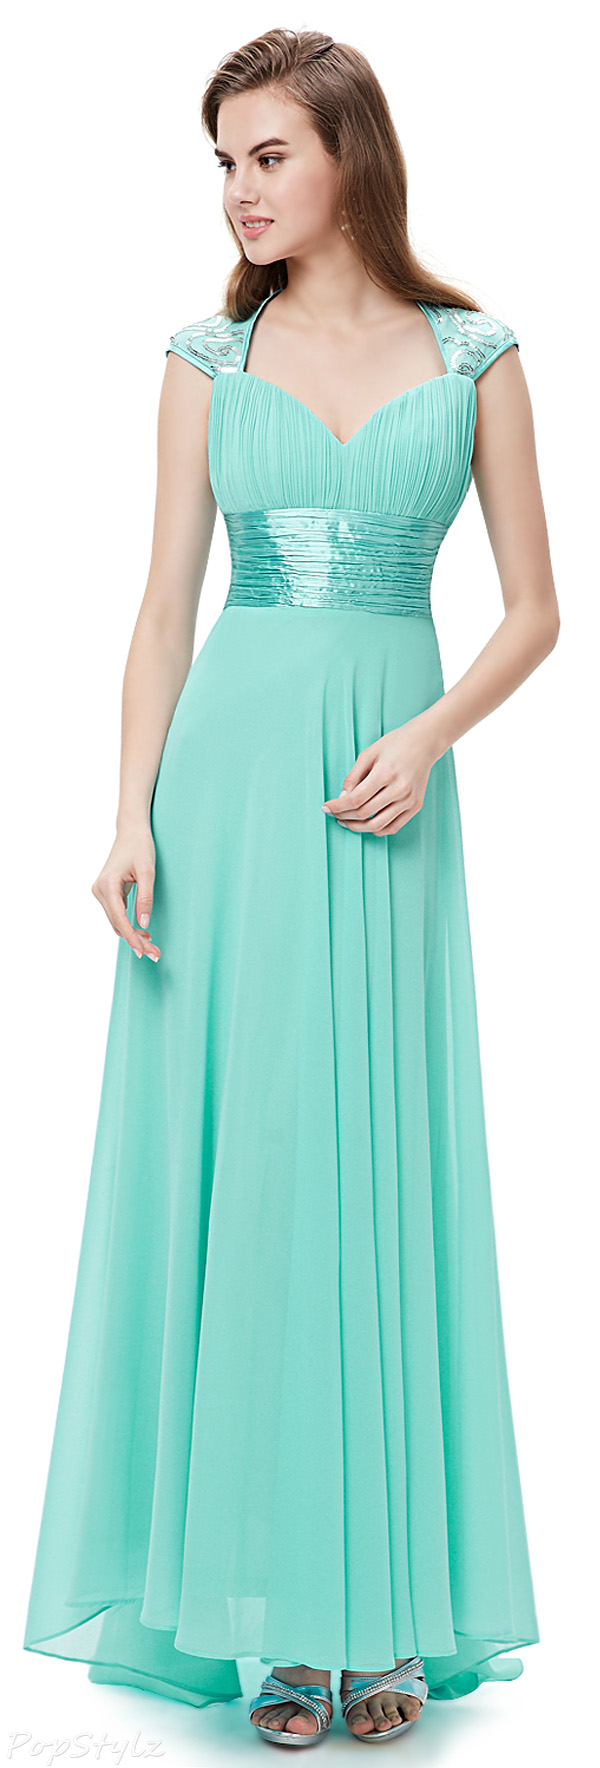 Ever Pretty 09672 V-neck Ruched Empire Line Long Dress